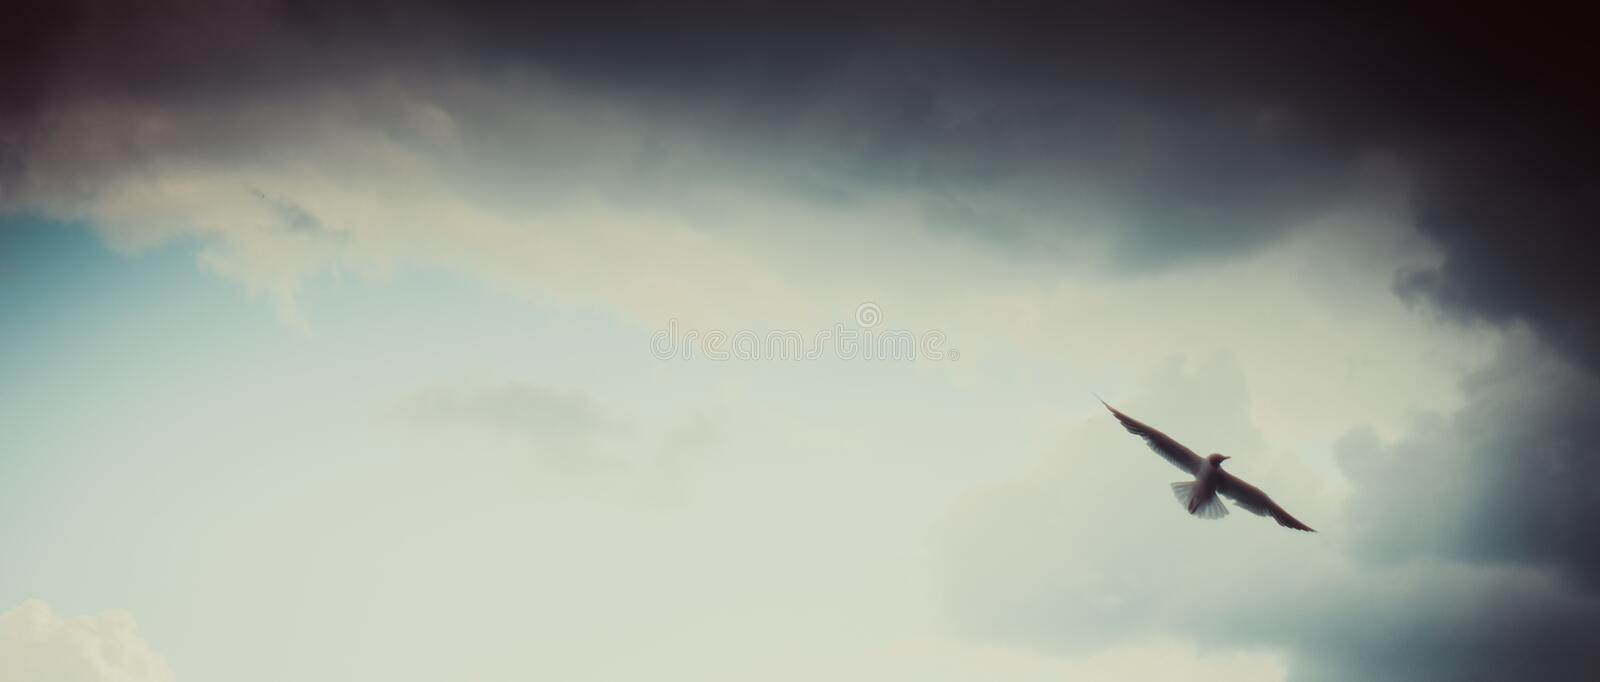 Seagull flying on cloudy beautiful blue sky royalty free stock photography